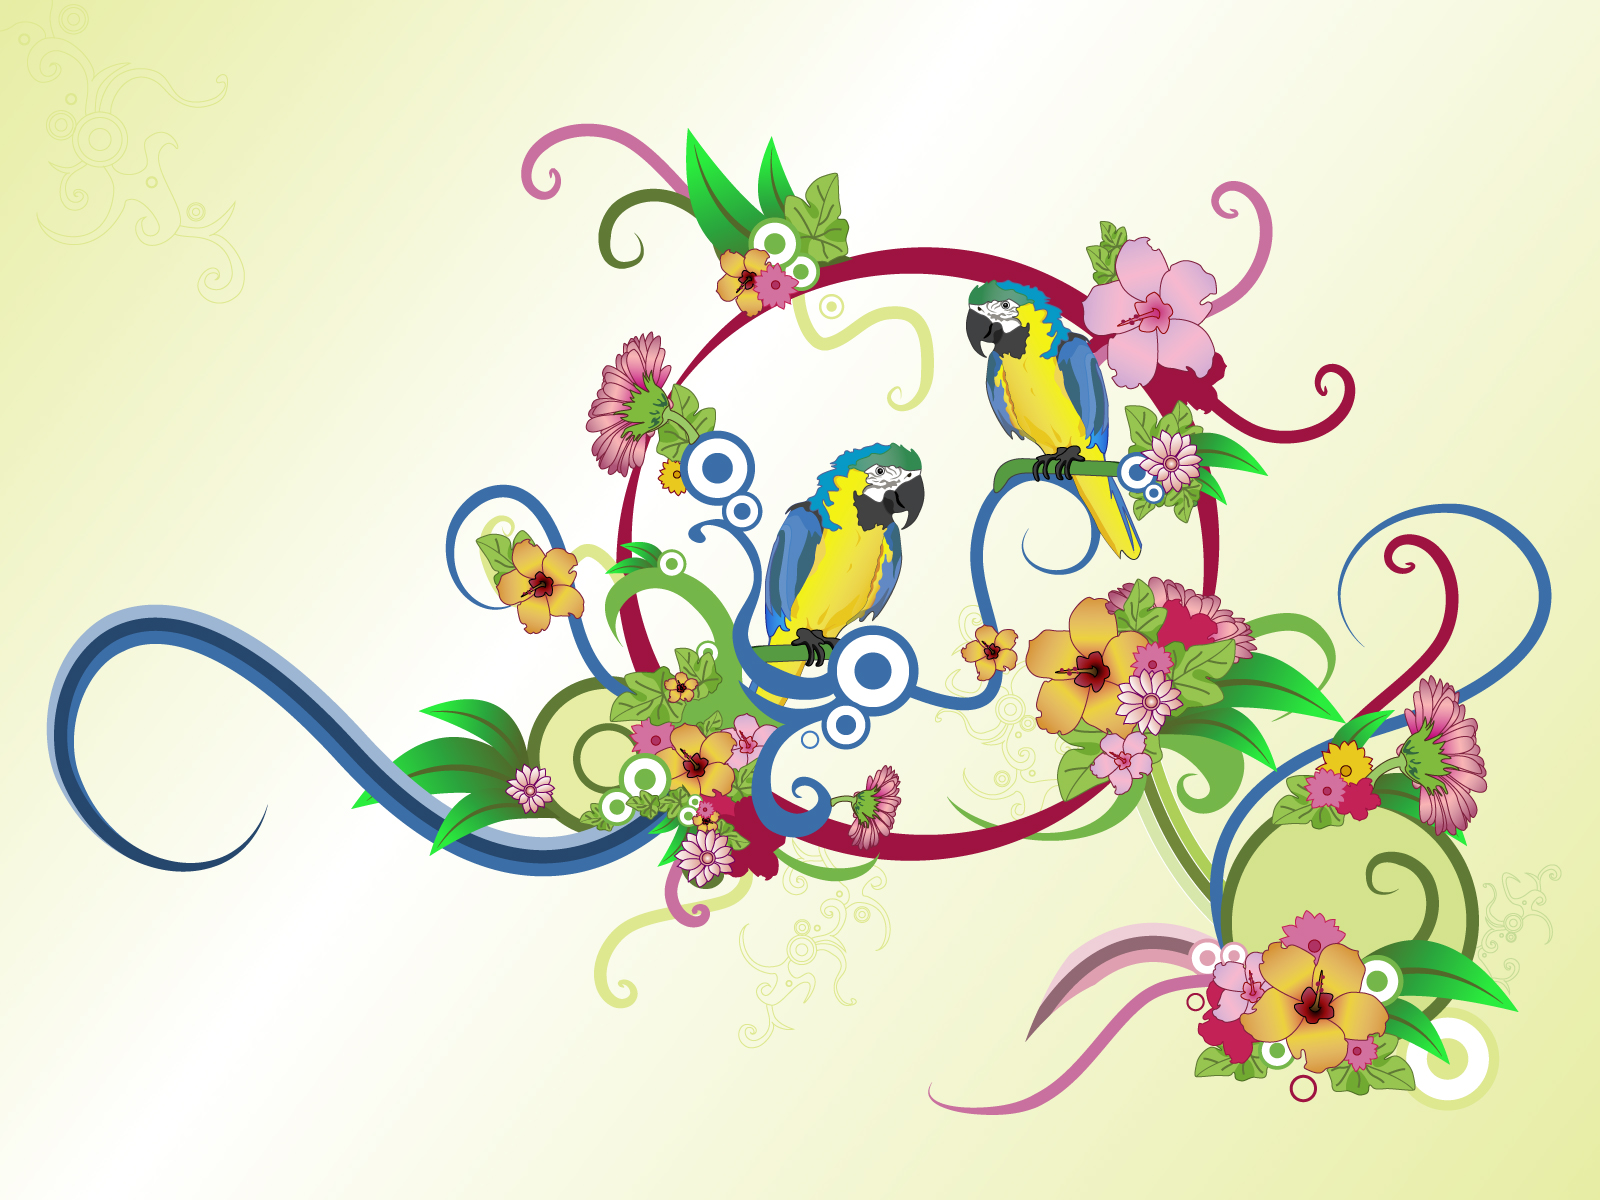 Art Desain Parrot Wallpapers Pets Cute And Docile